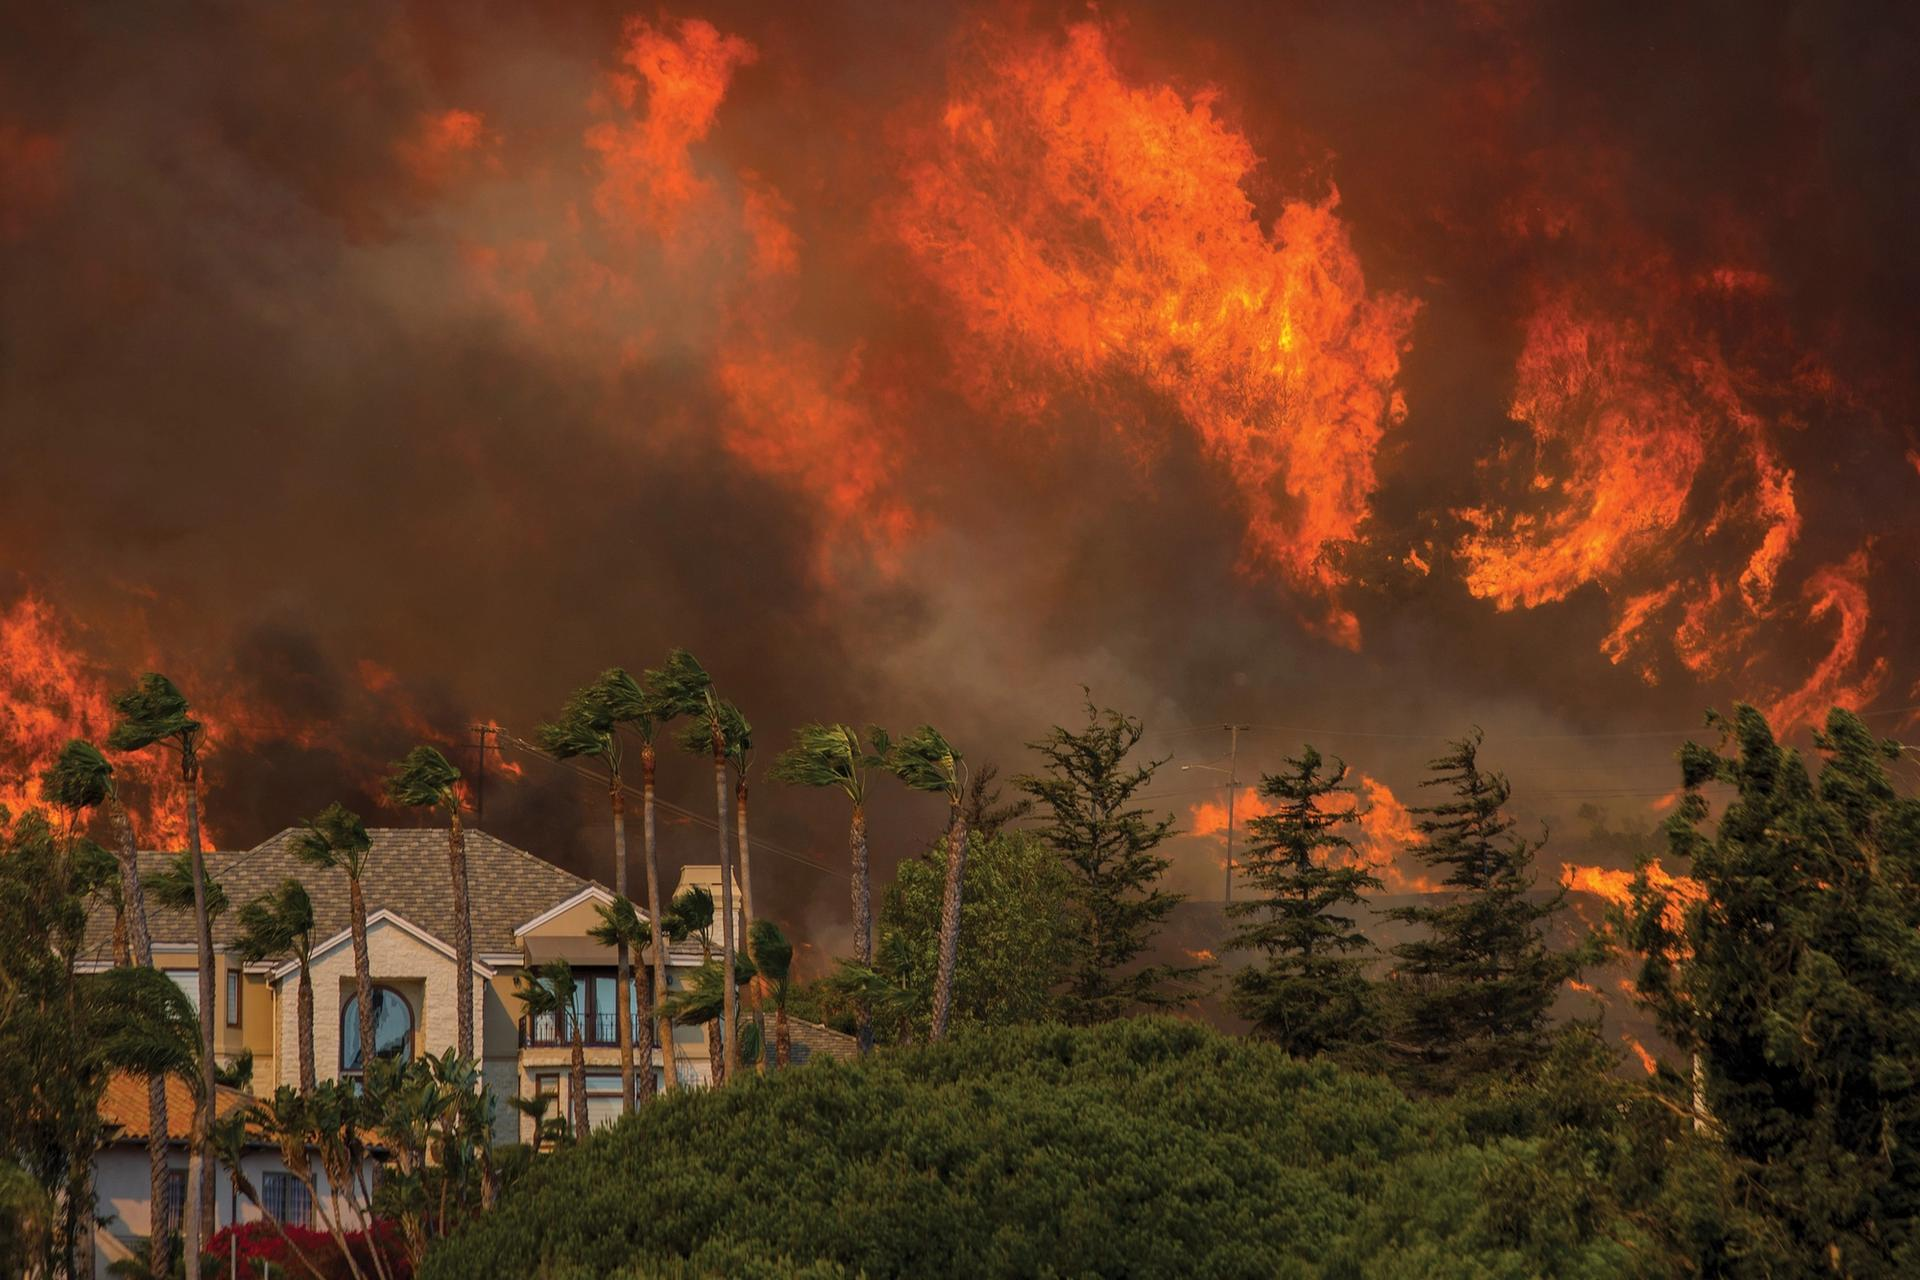 The Woolsey Fire approaches homes on November 9, 2018 in Malibu, California. About 75,000 homes have been evacuated in Los Angeles and Ventura counties due to two fires in the region © David McNew/Getty Images